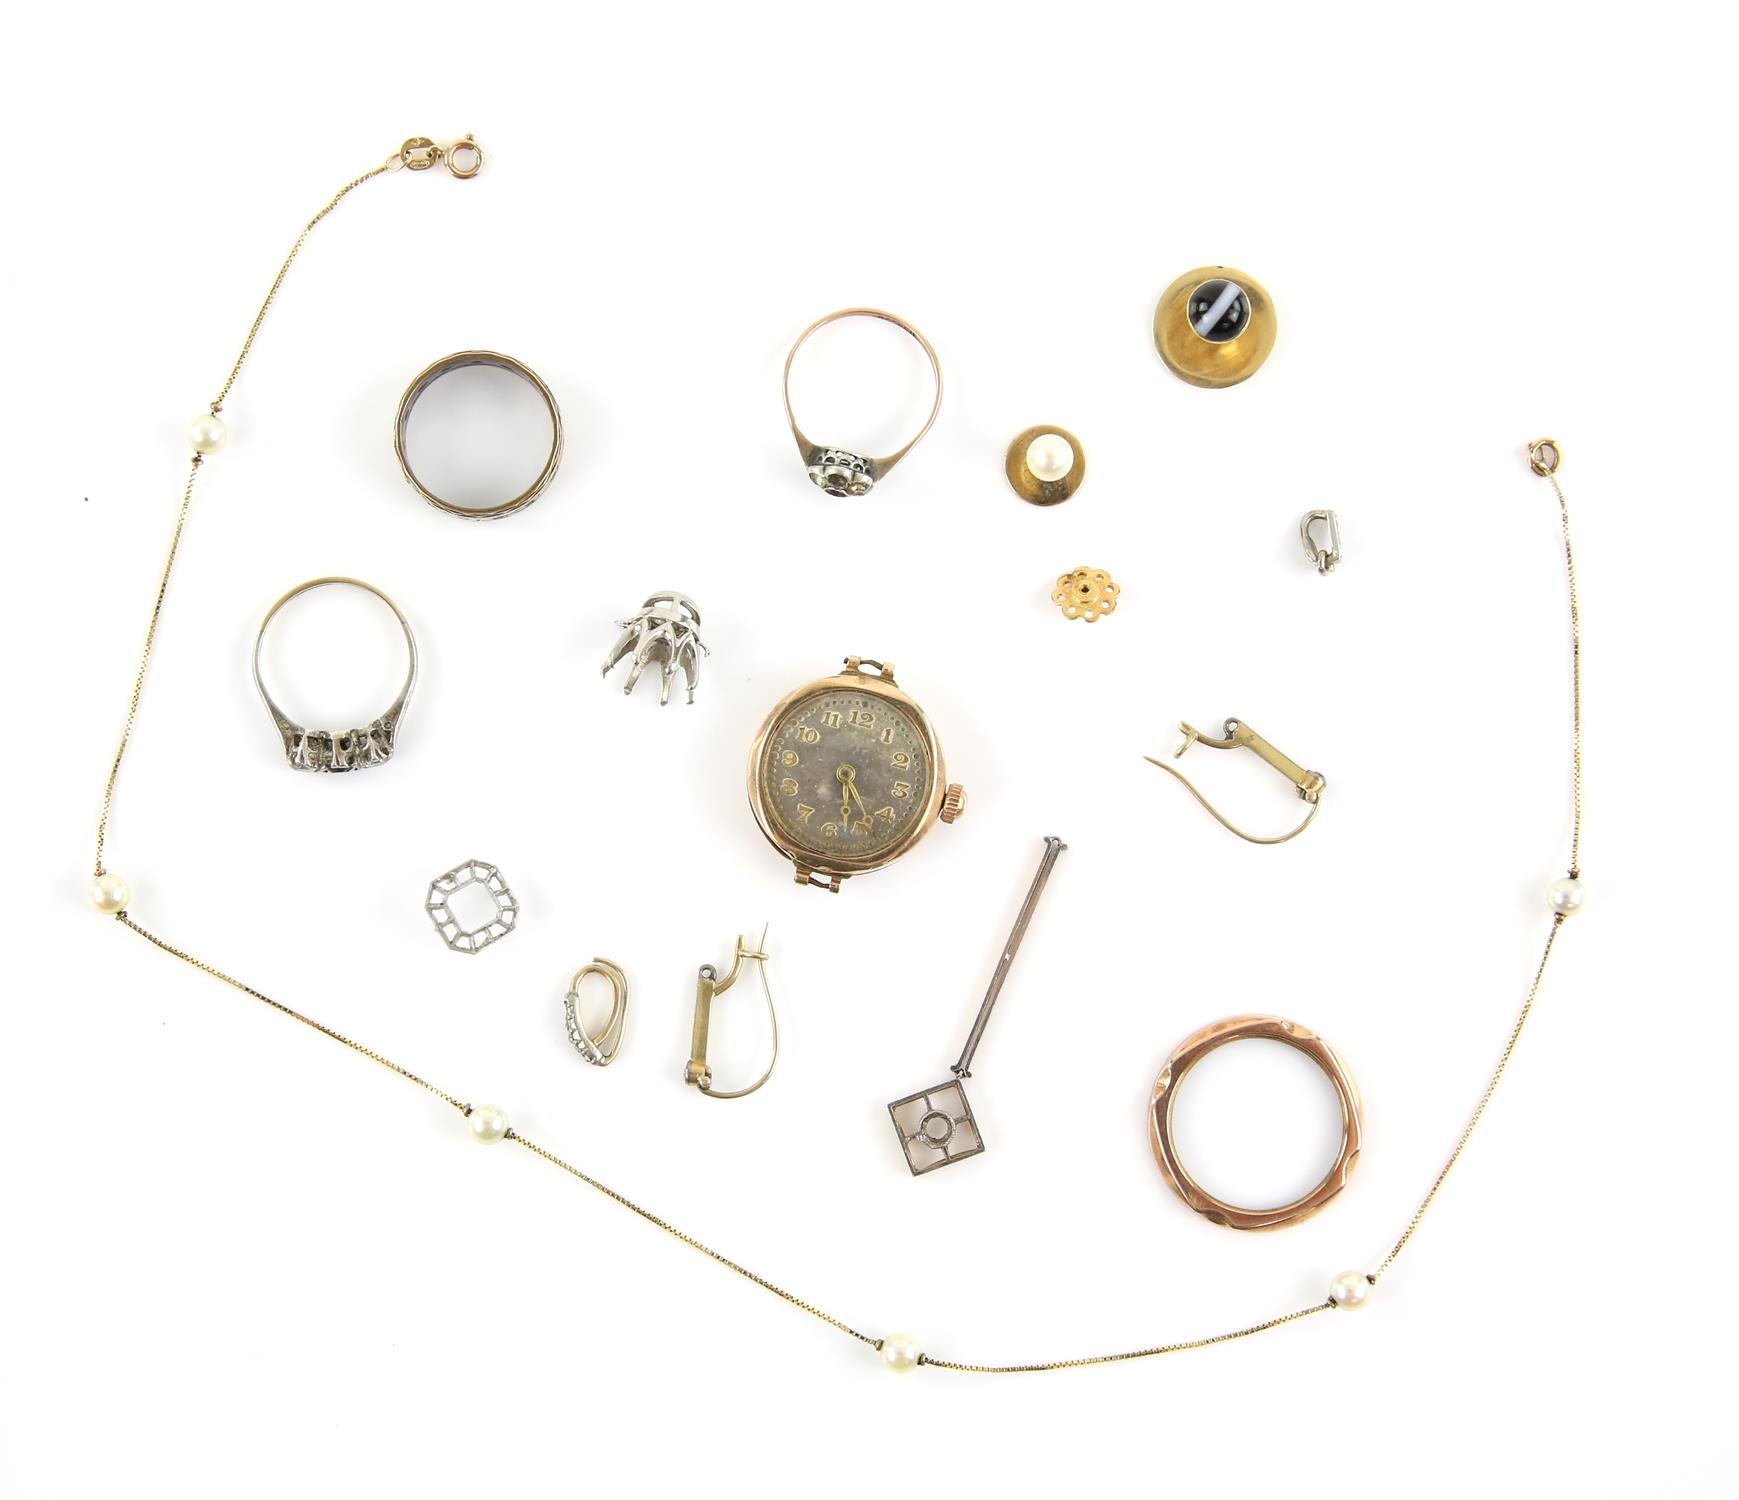 A mixed group of items, including a pearl and box chain link necklace, 38cm in length,